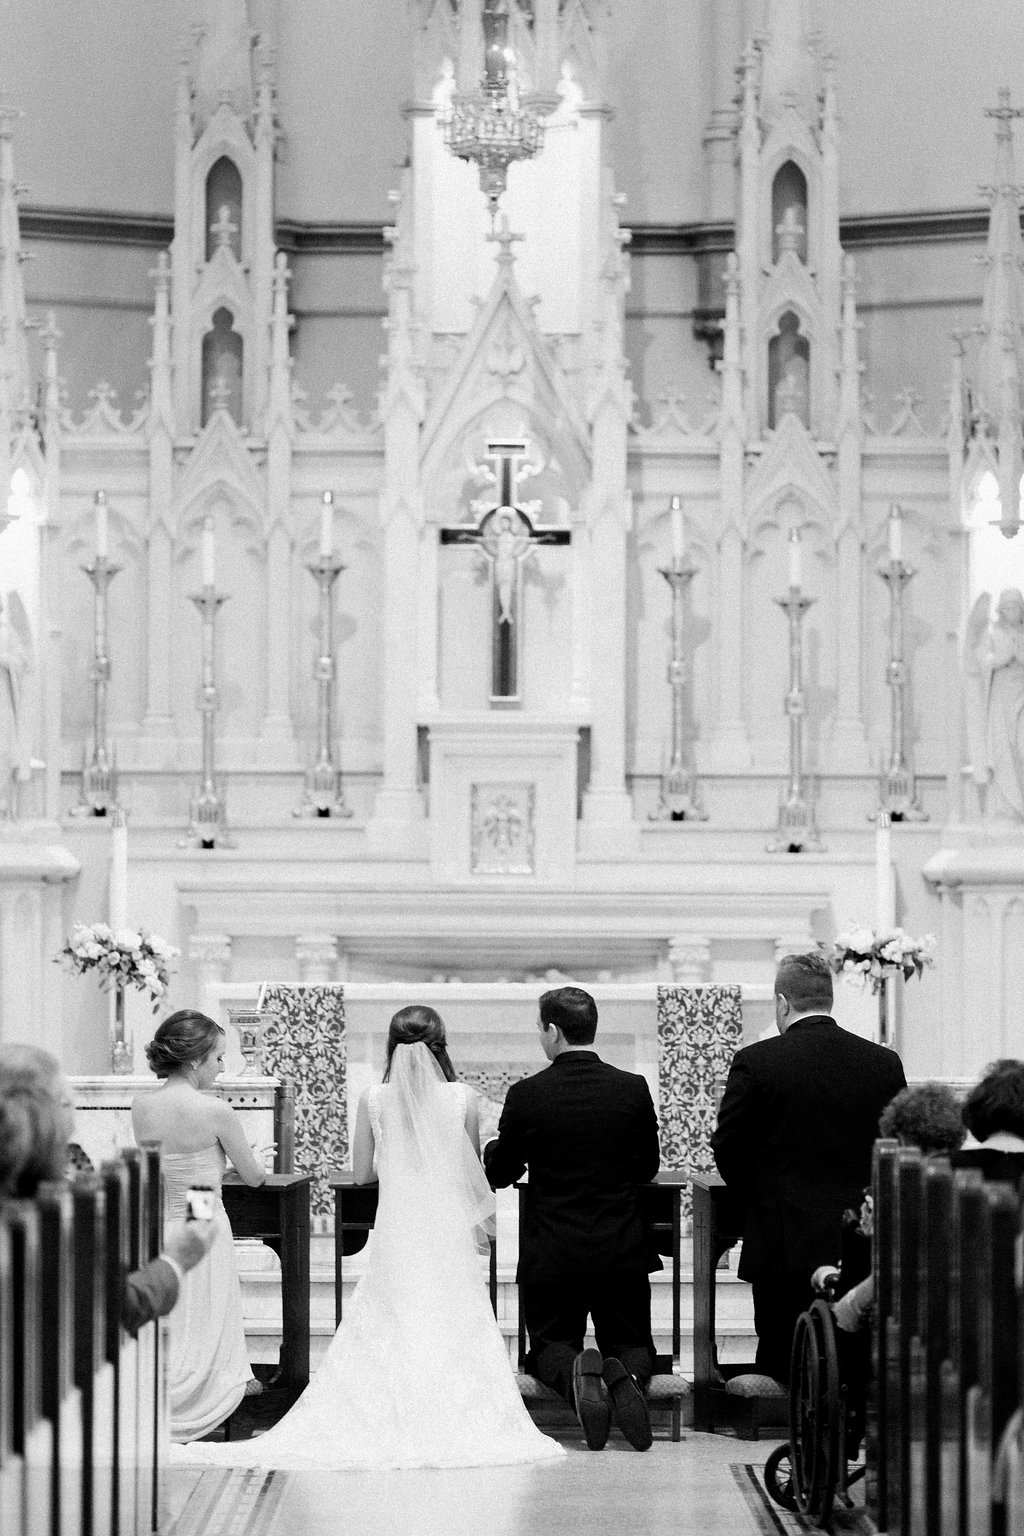 Bride and groom kneeling at church altar during wedding ceremony